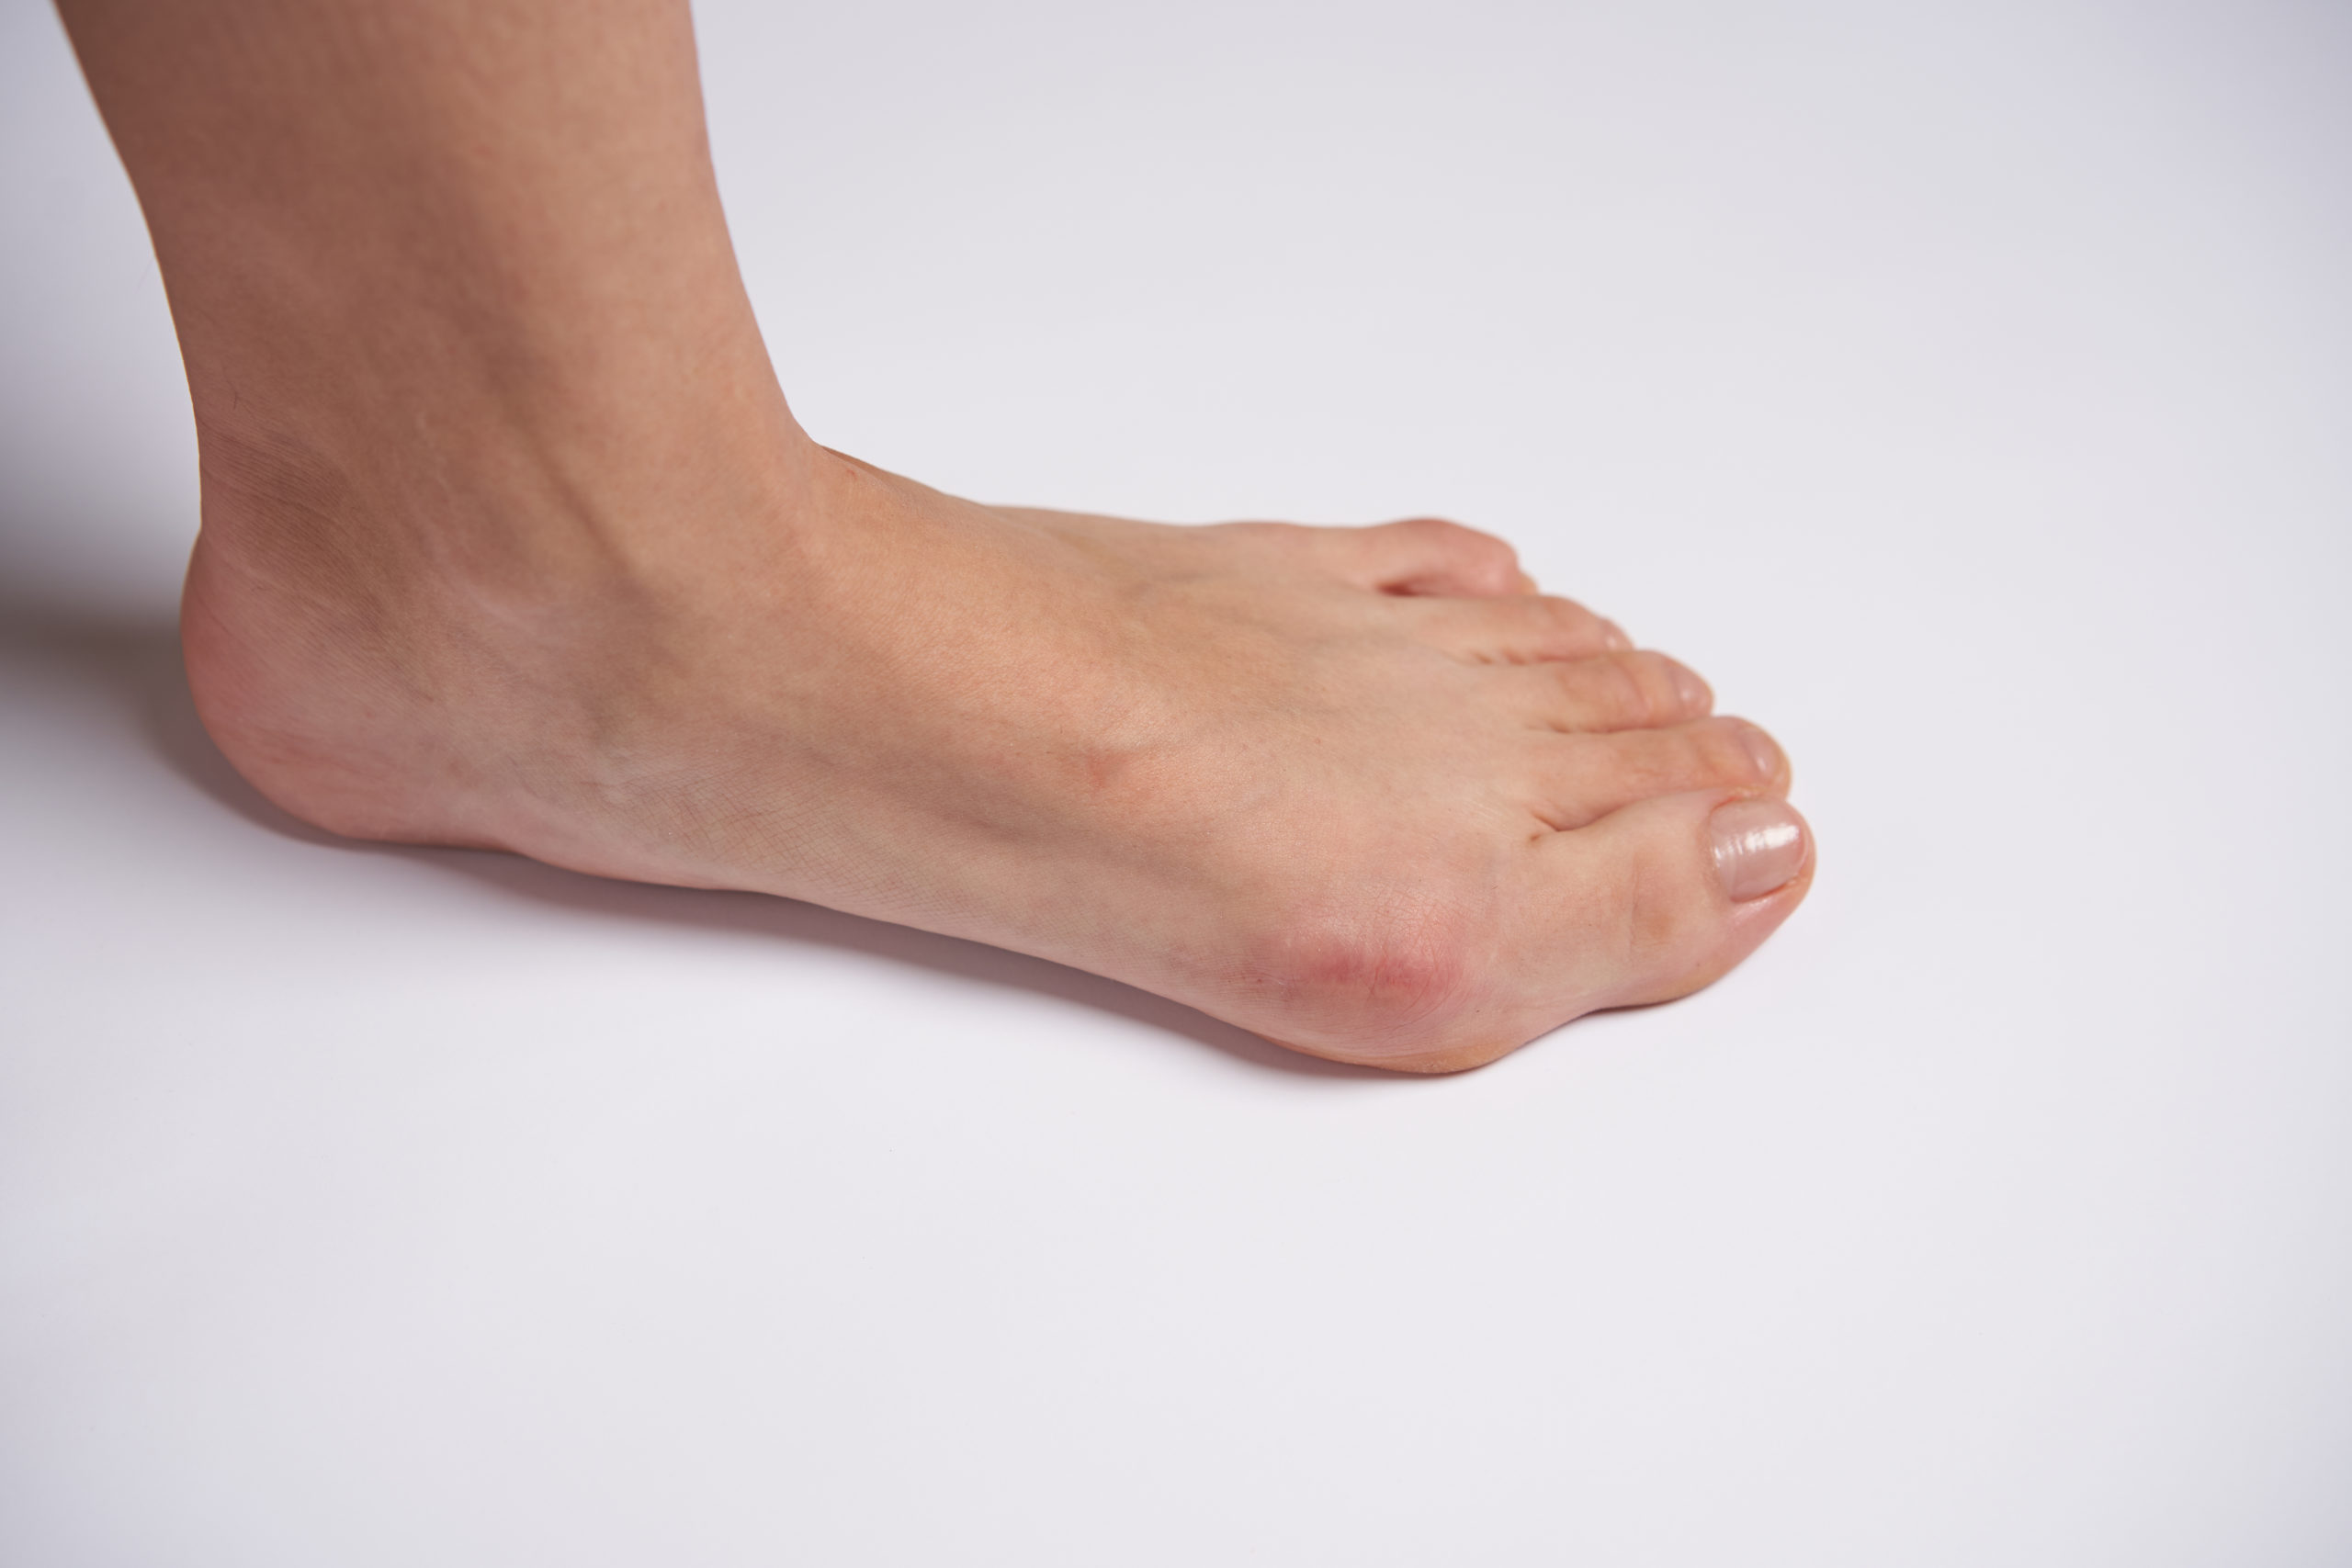 Bunion and hammertoe pain